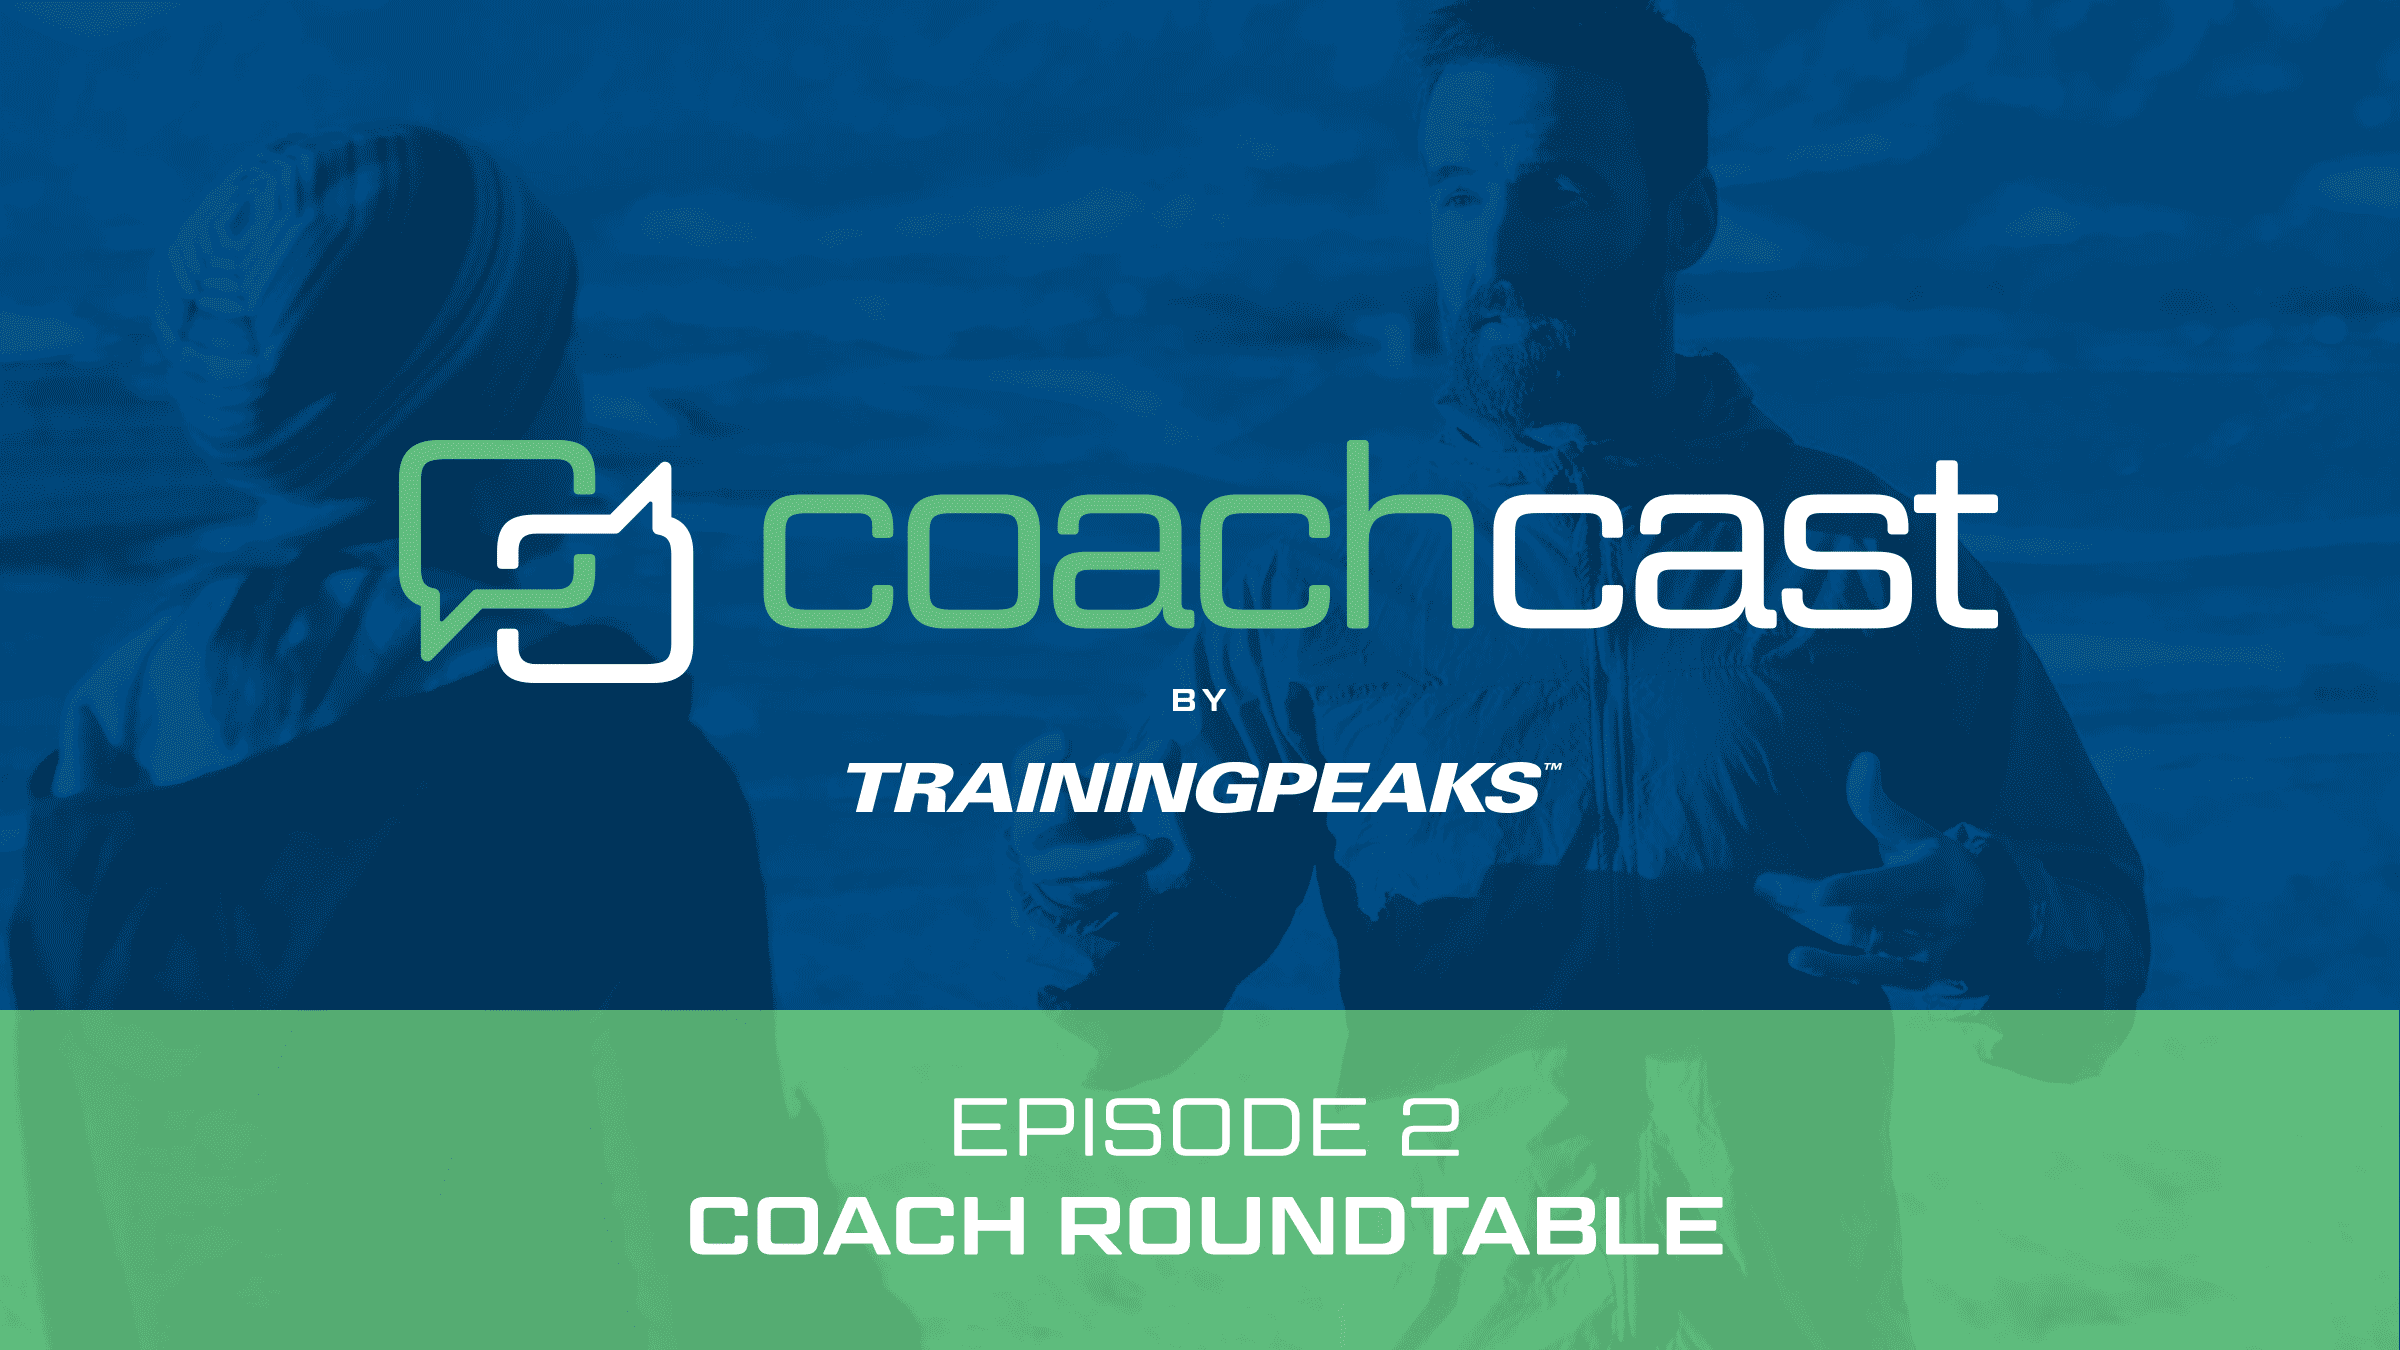 CoachCast: Coach Roundtable Discusses New Athlete Experience